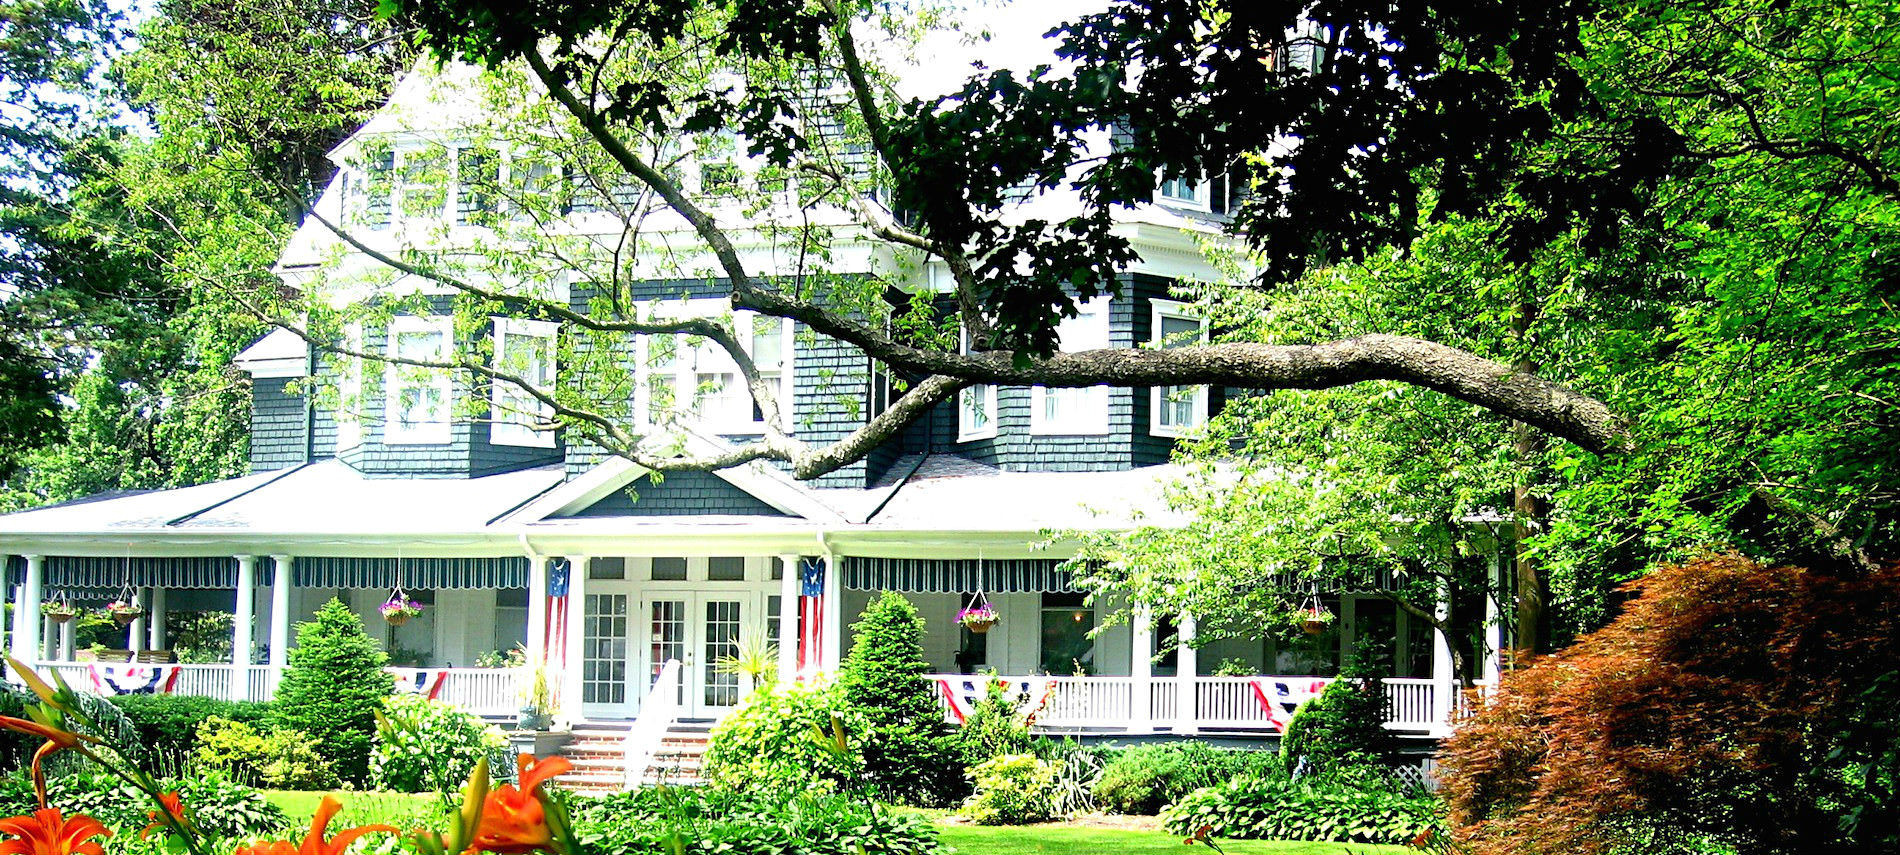 ocean grove bed and breakfast inn nj hotel new jersey lodging